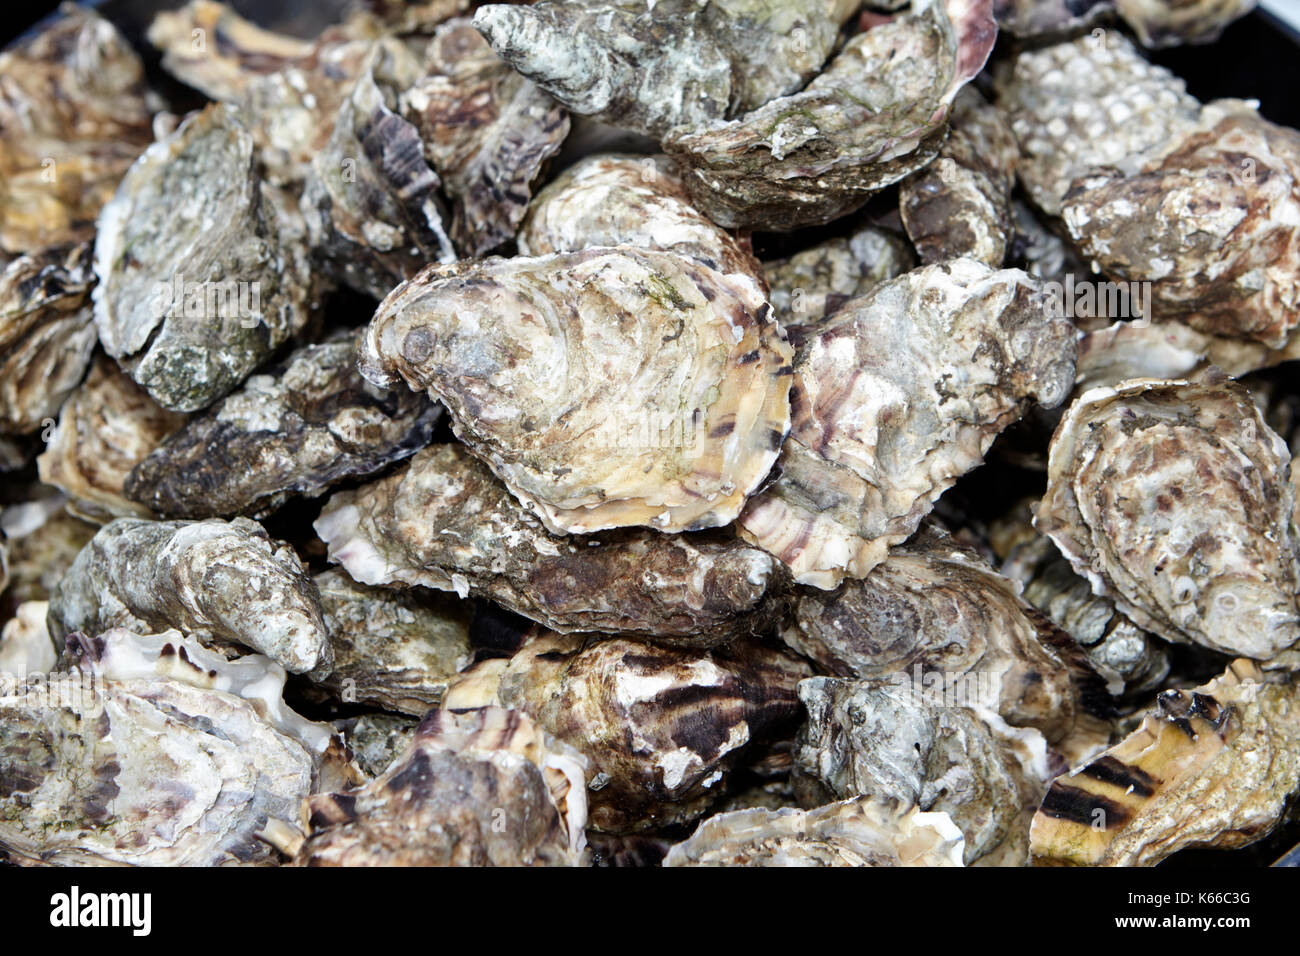 locally caught oysters in county down northern ireland - Stock Image